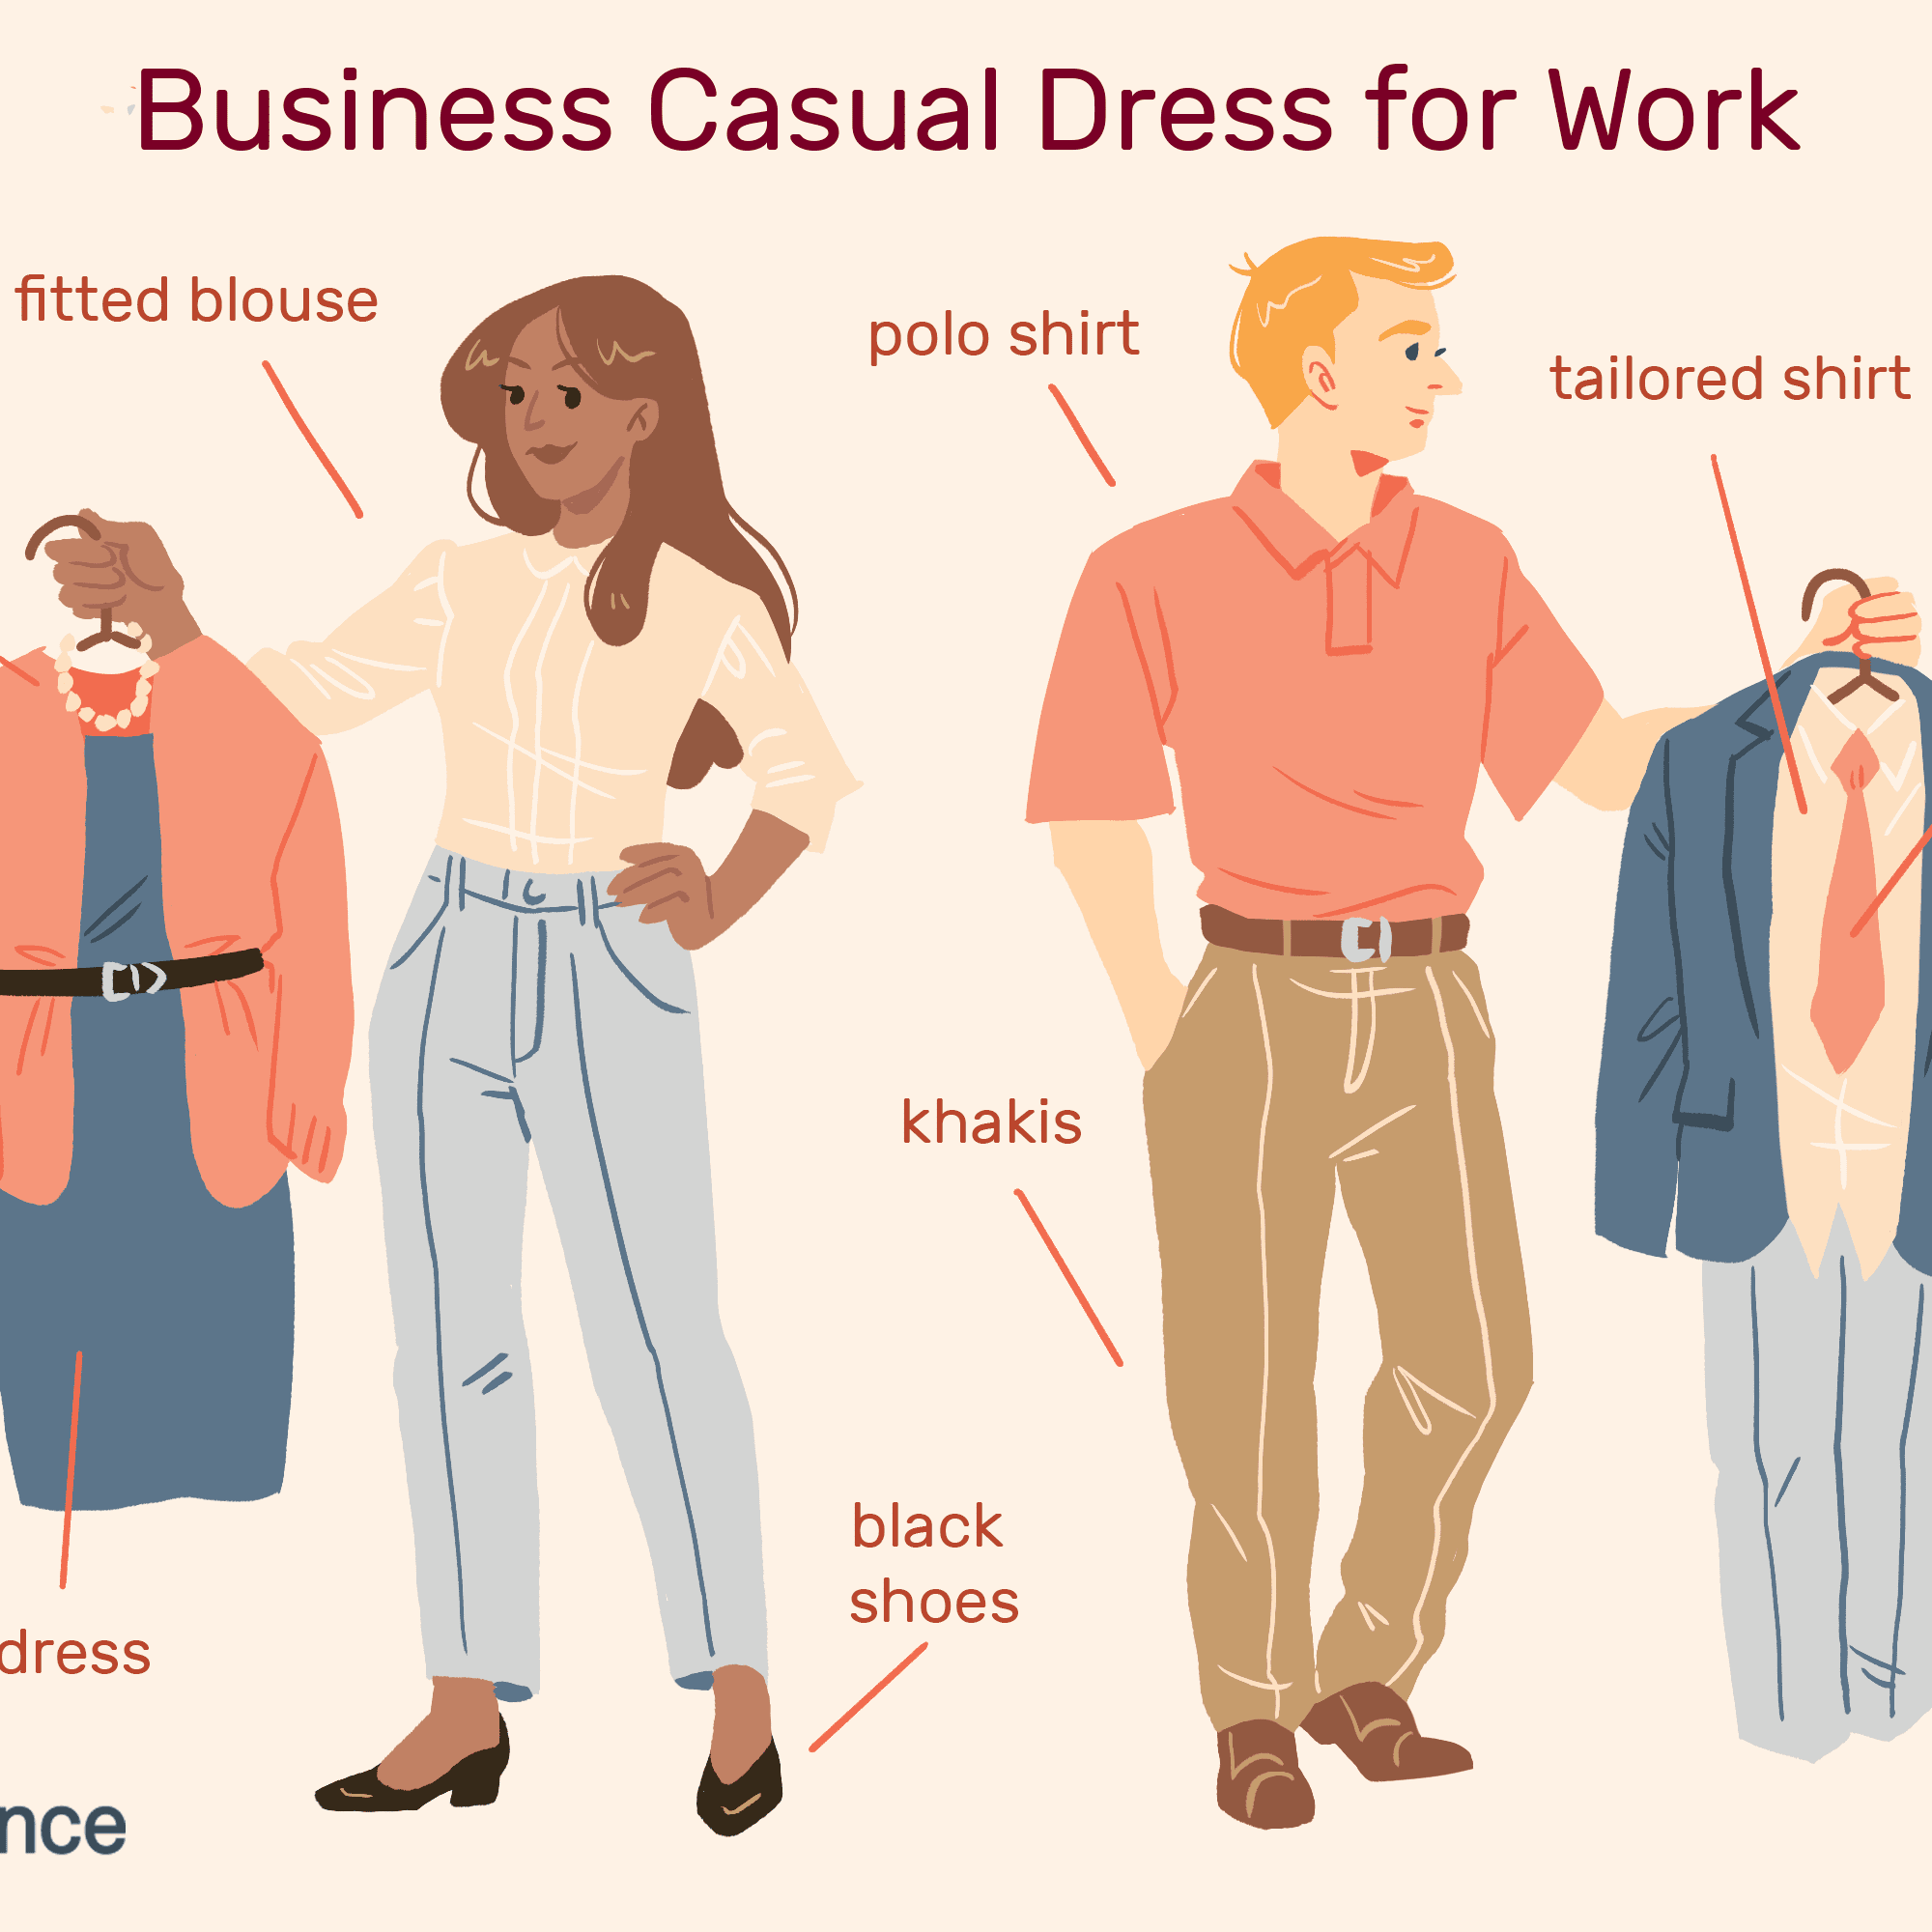 cc324839 Images of Business Casual Dress for the Workplace